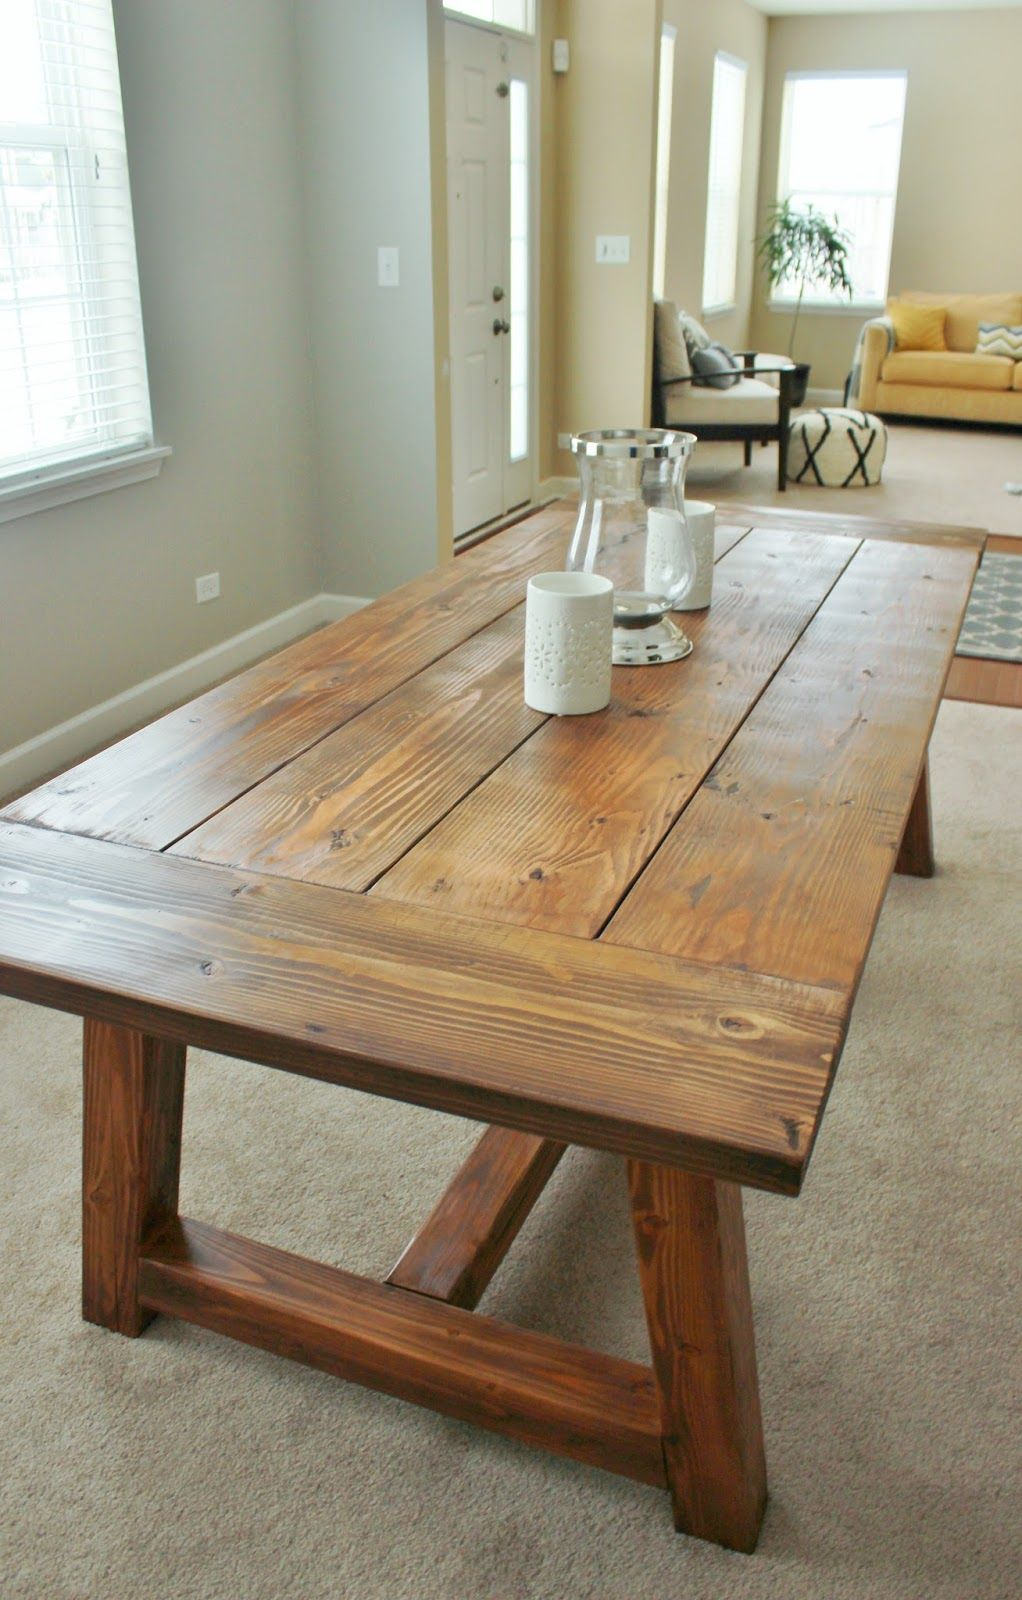 Diy rustic wood dining table - We Built A Farmhouse Dining Room Table